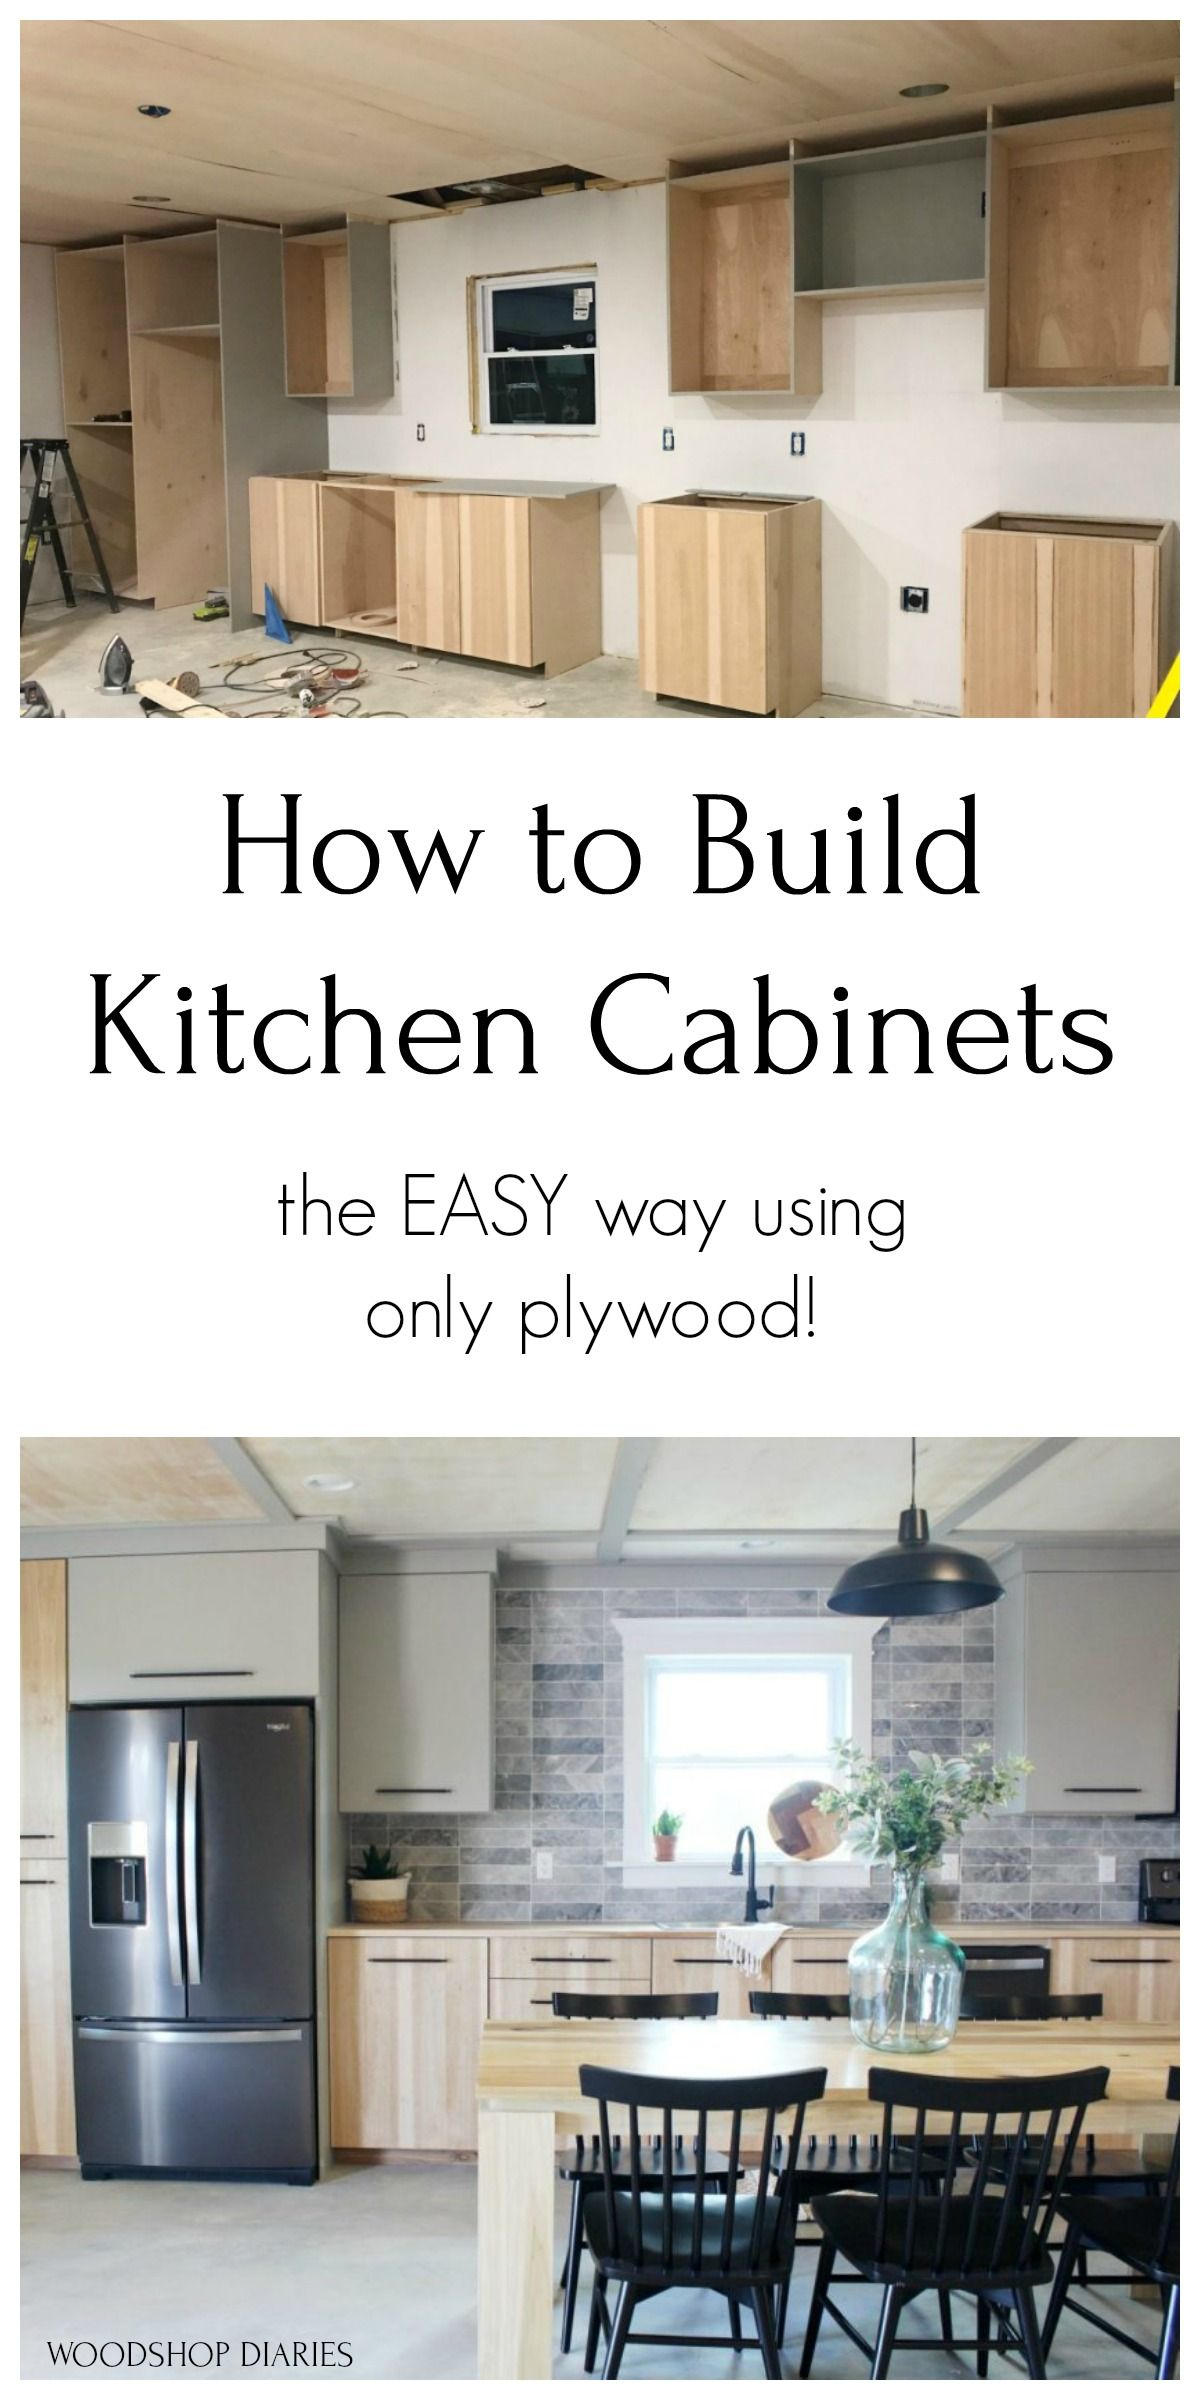 21 Diy Kitchen Cabinets Ideas Plans That Are Easy Cheap To Build Kitchen Cabinet Plans Diy Kitchen Cabinets Latest Kitchen Cabinet Design